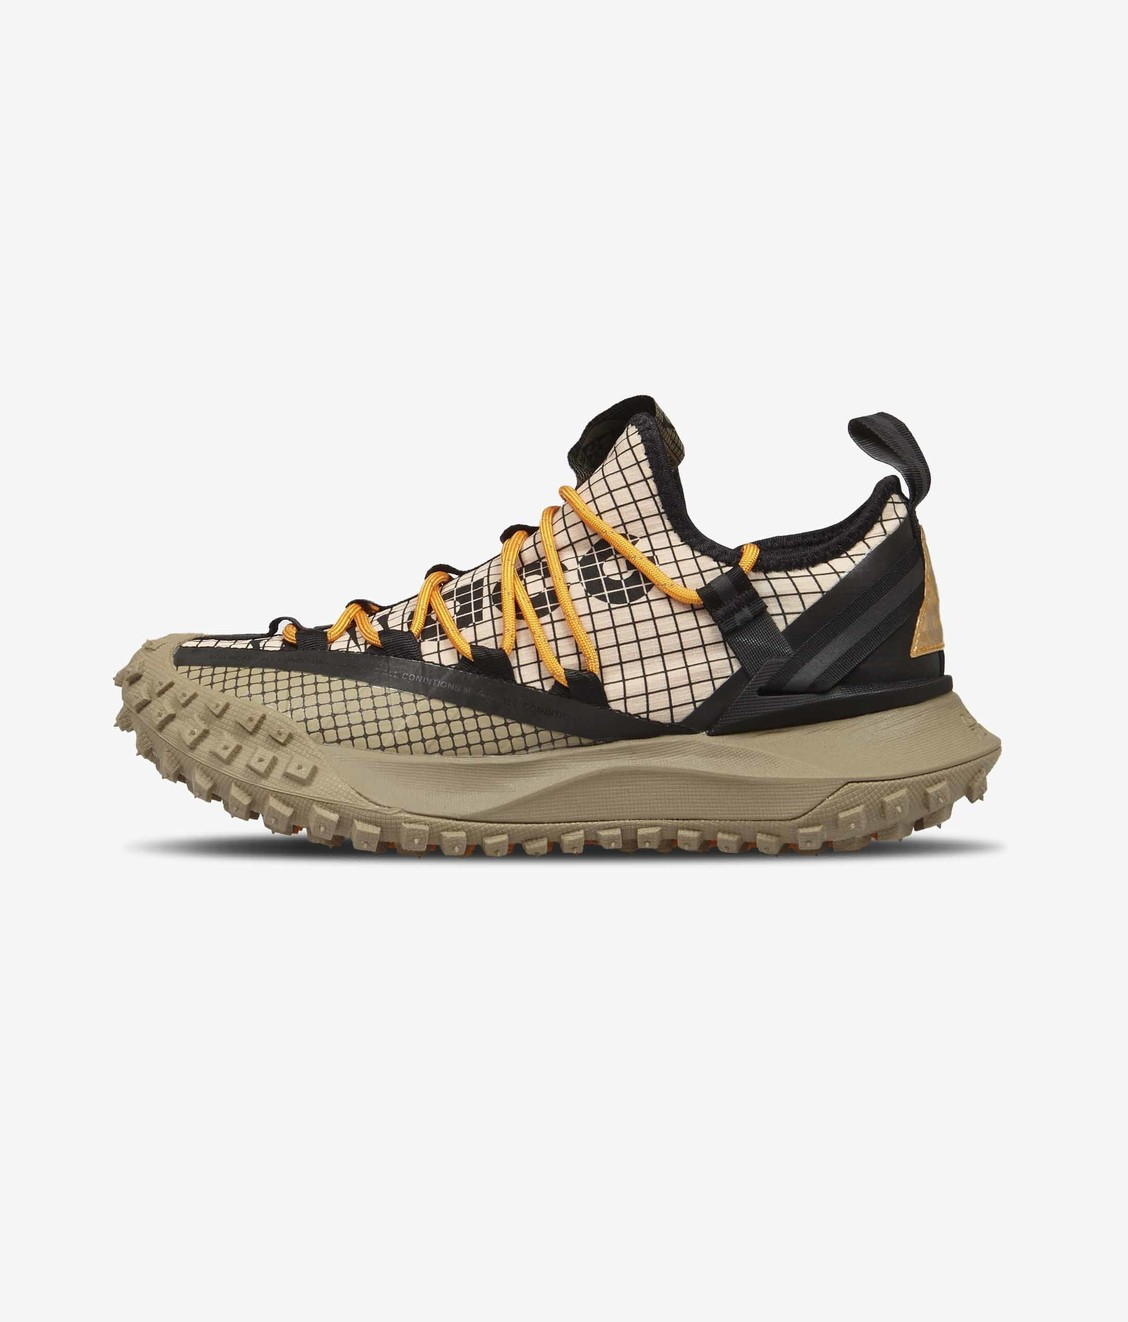 Nike Nike ACG Mountain Fly Low Fossil Stone/Black